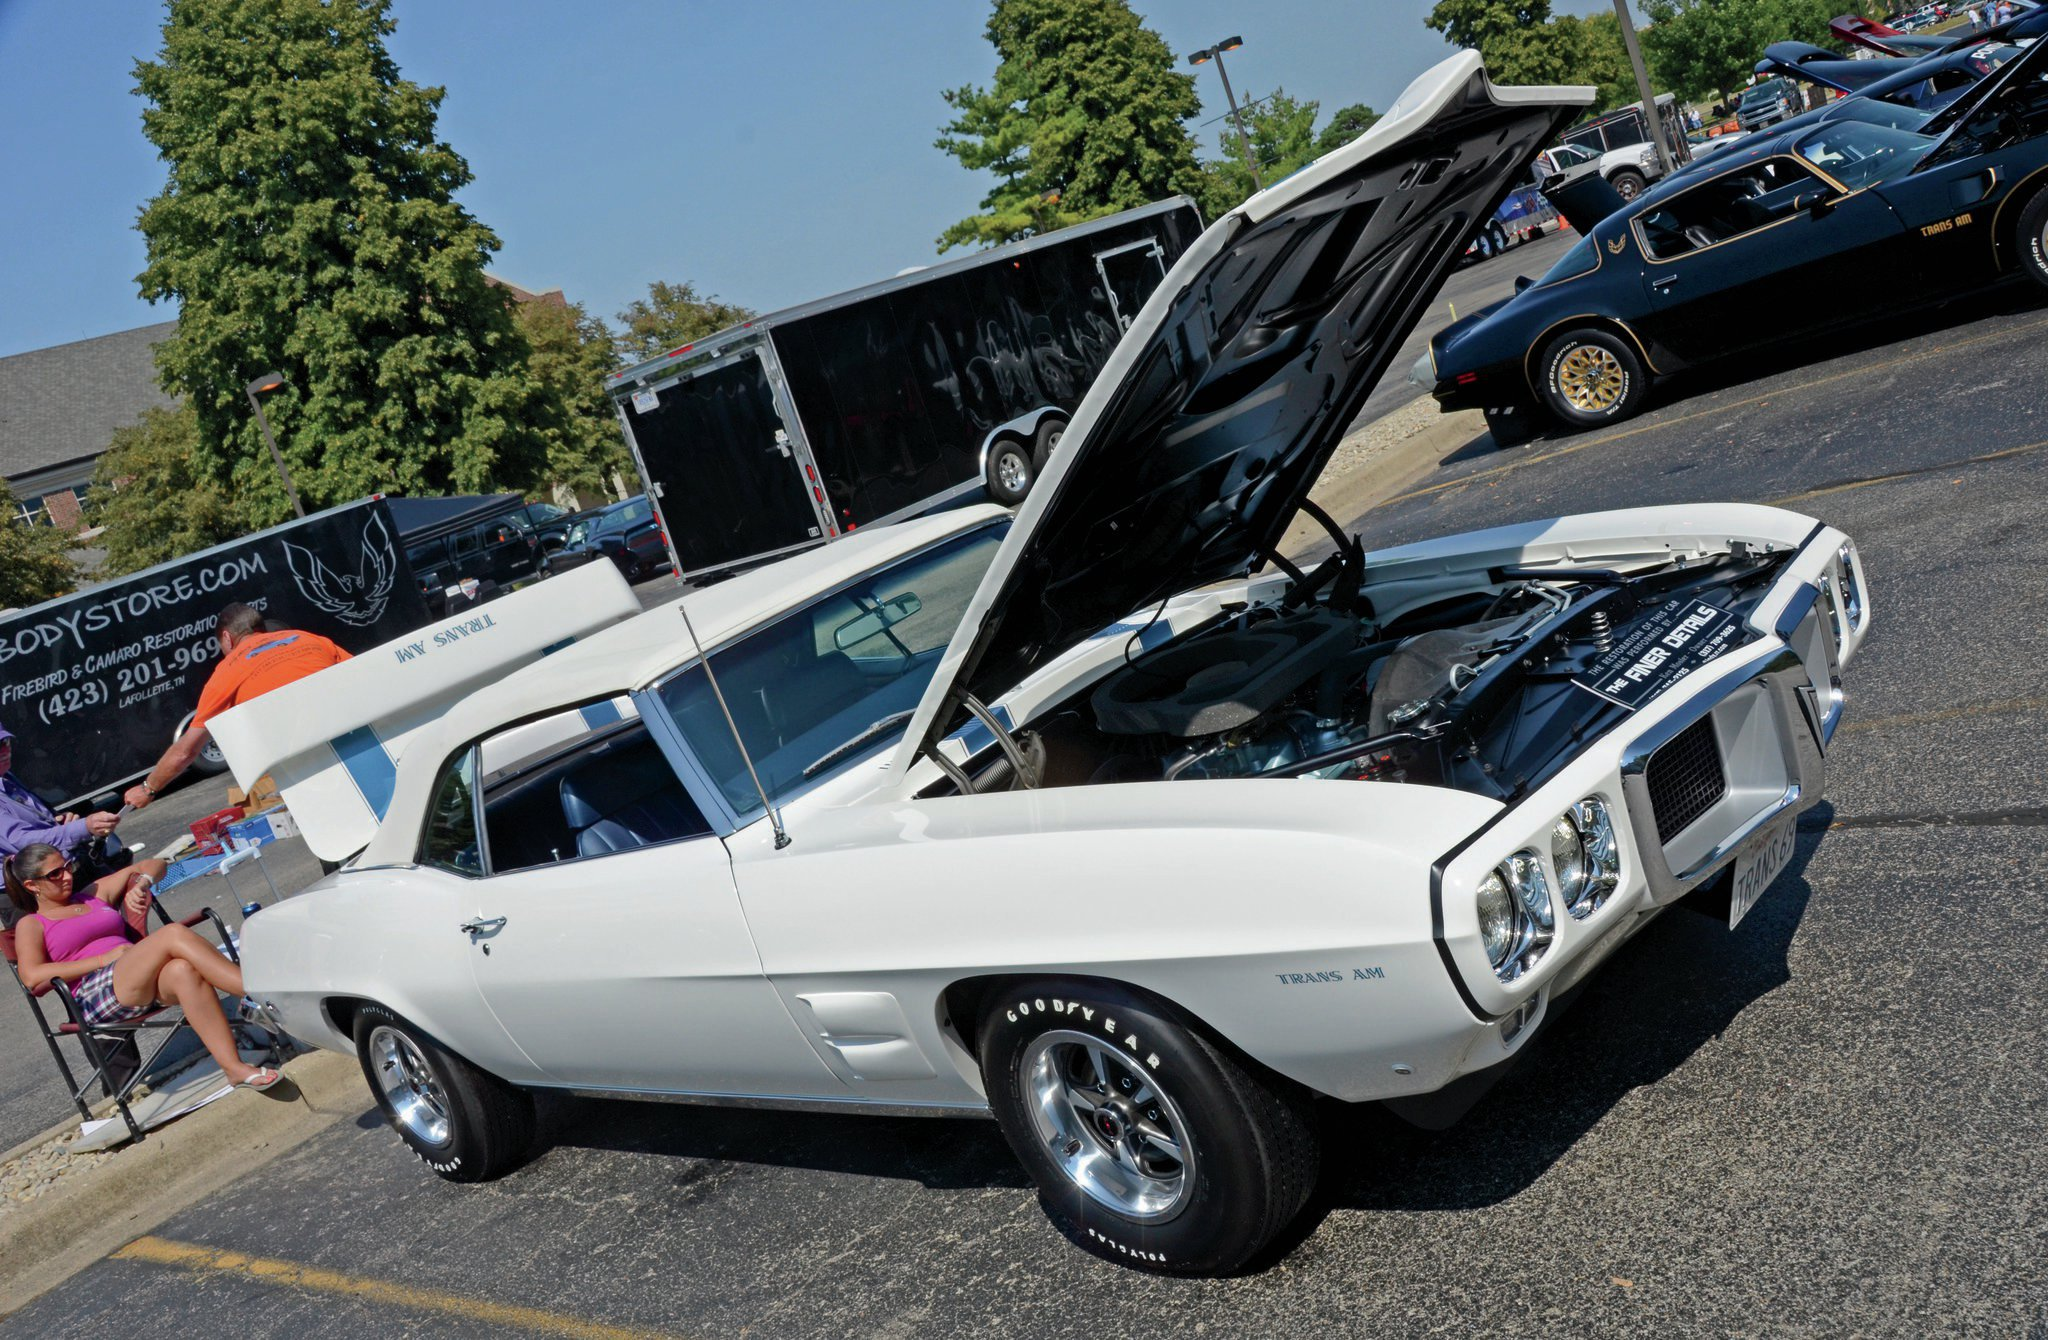 Pontiac only made 697 '69 Trans Ams, eight of which were convertibles, and this is one of them.